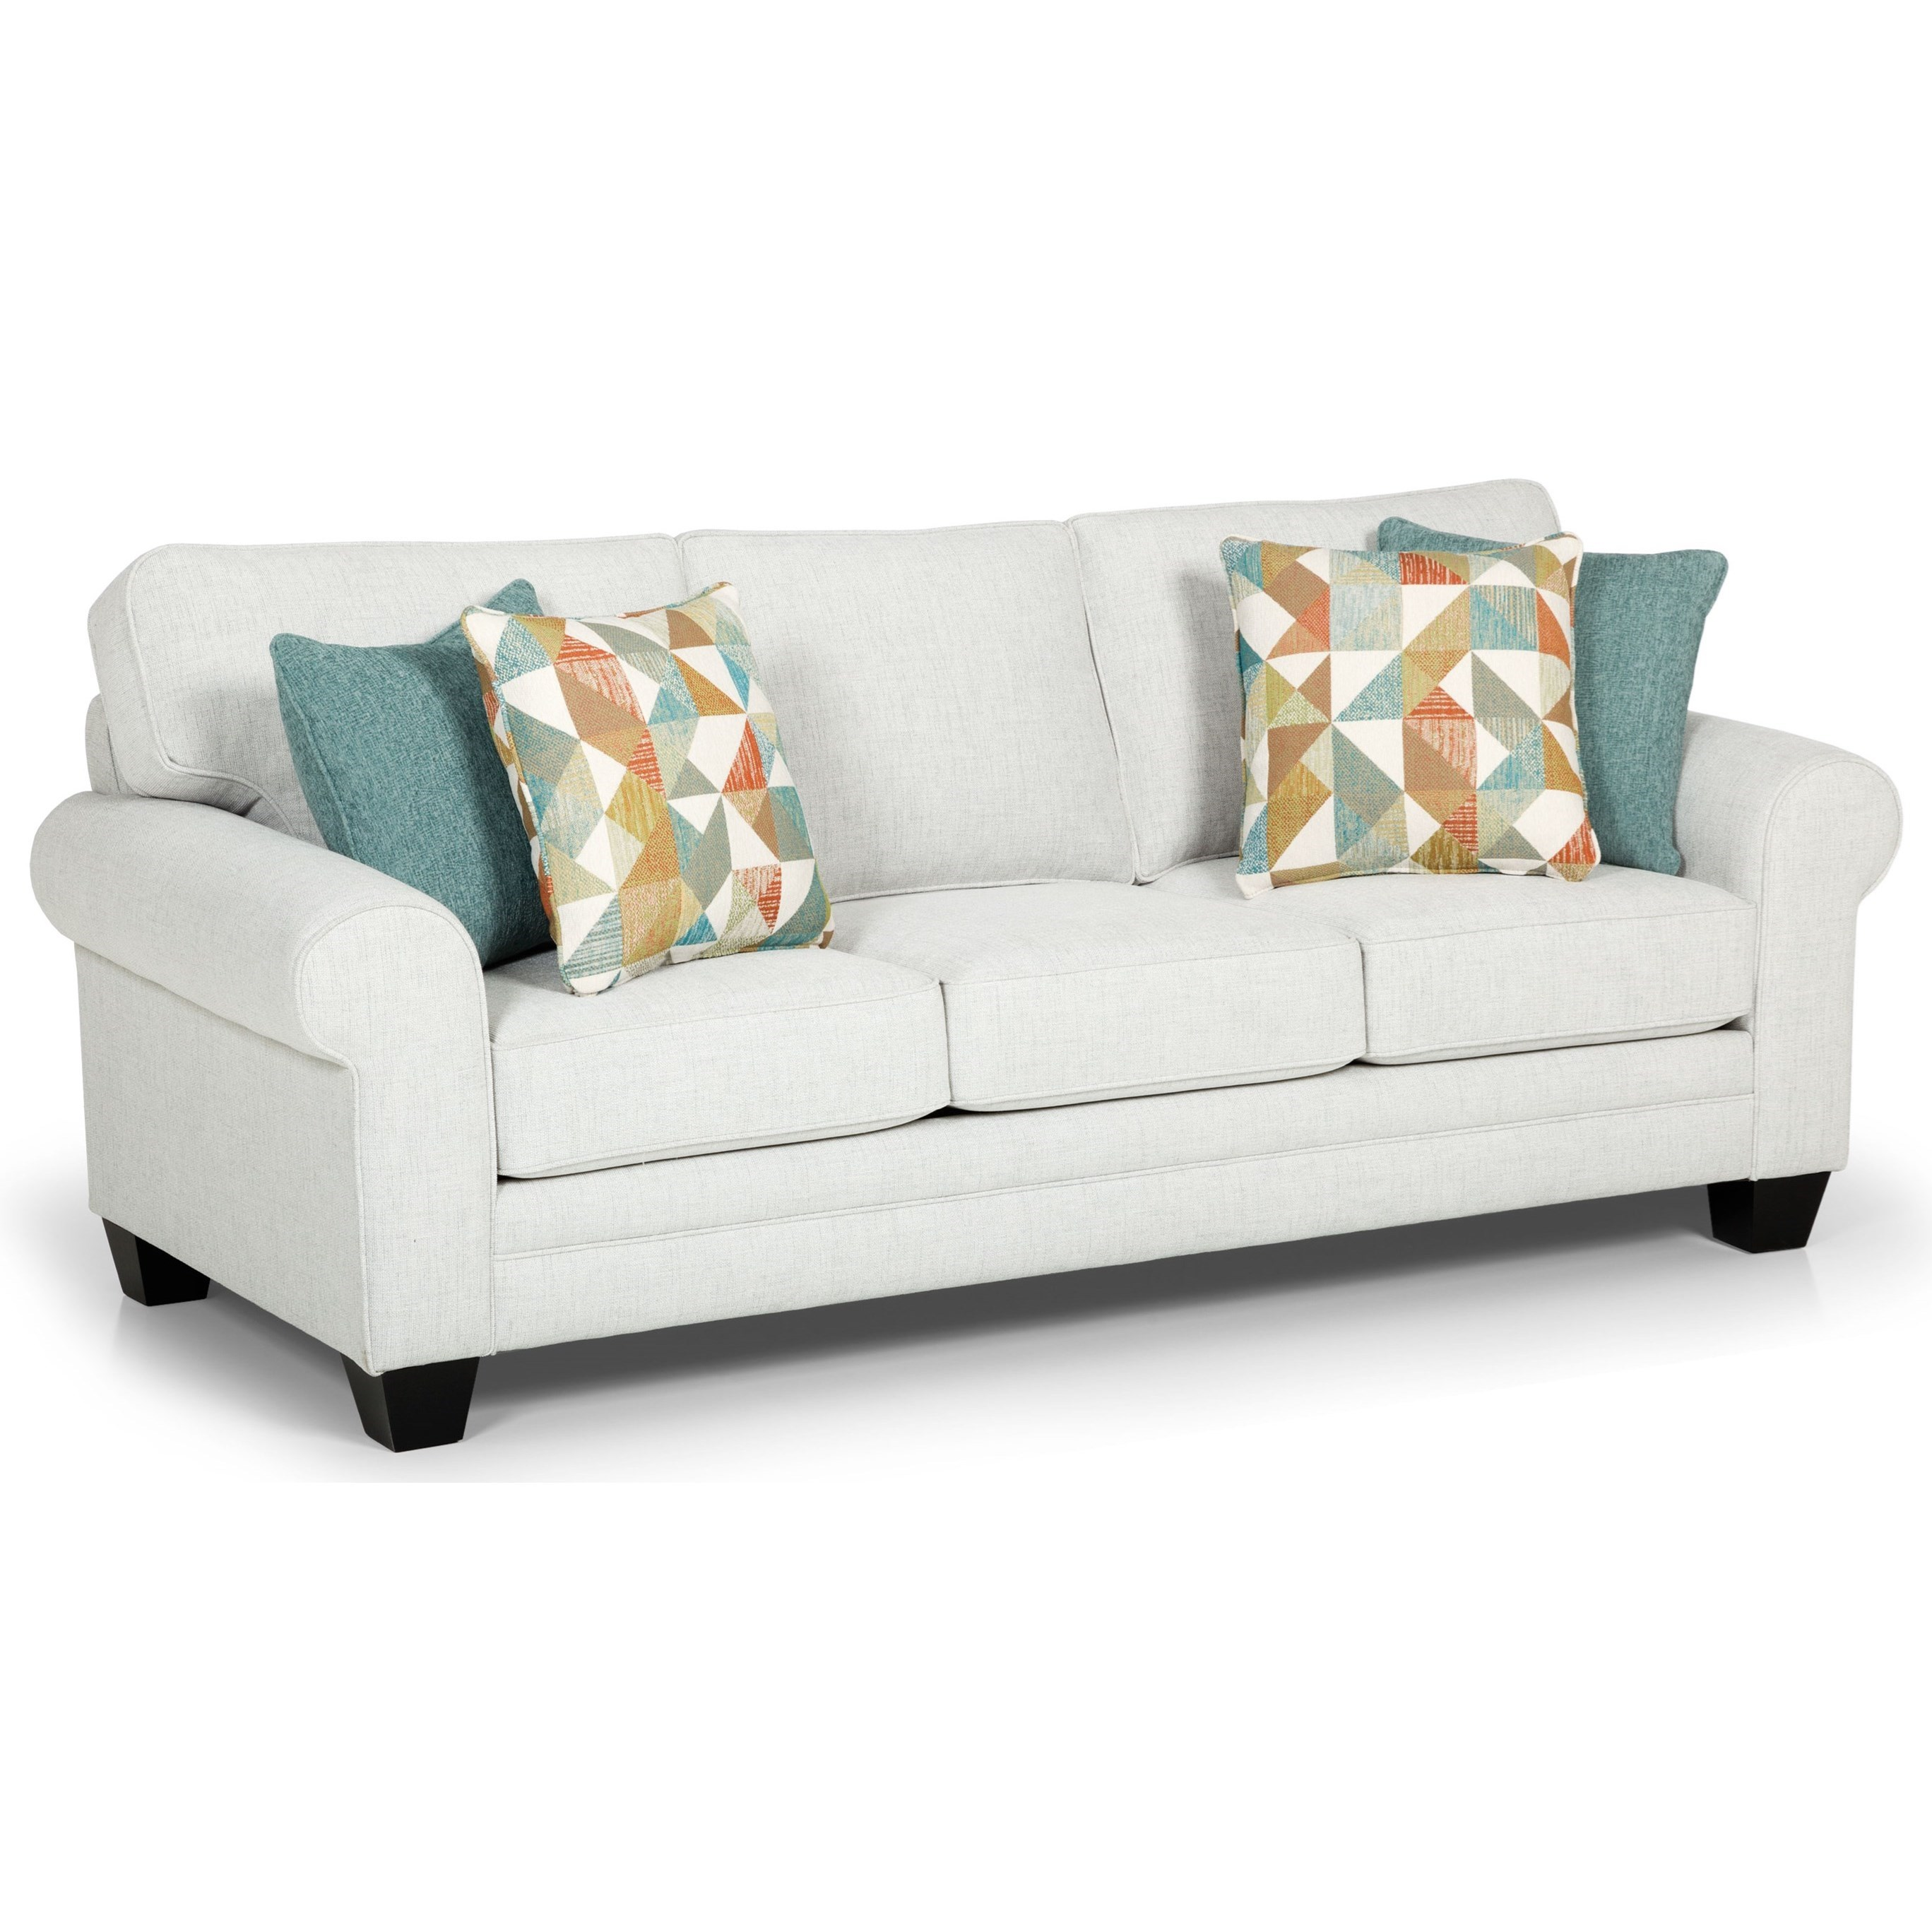 497 Sofa by Sunset Home at Sadler's Home Furnishings